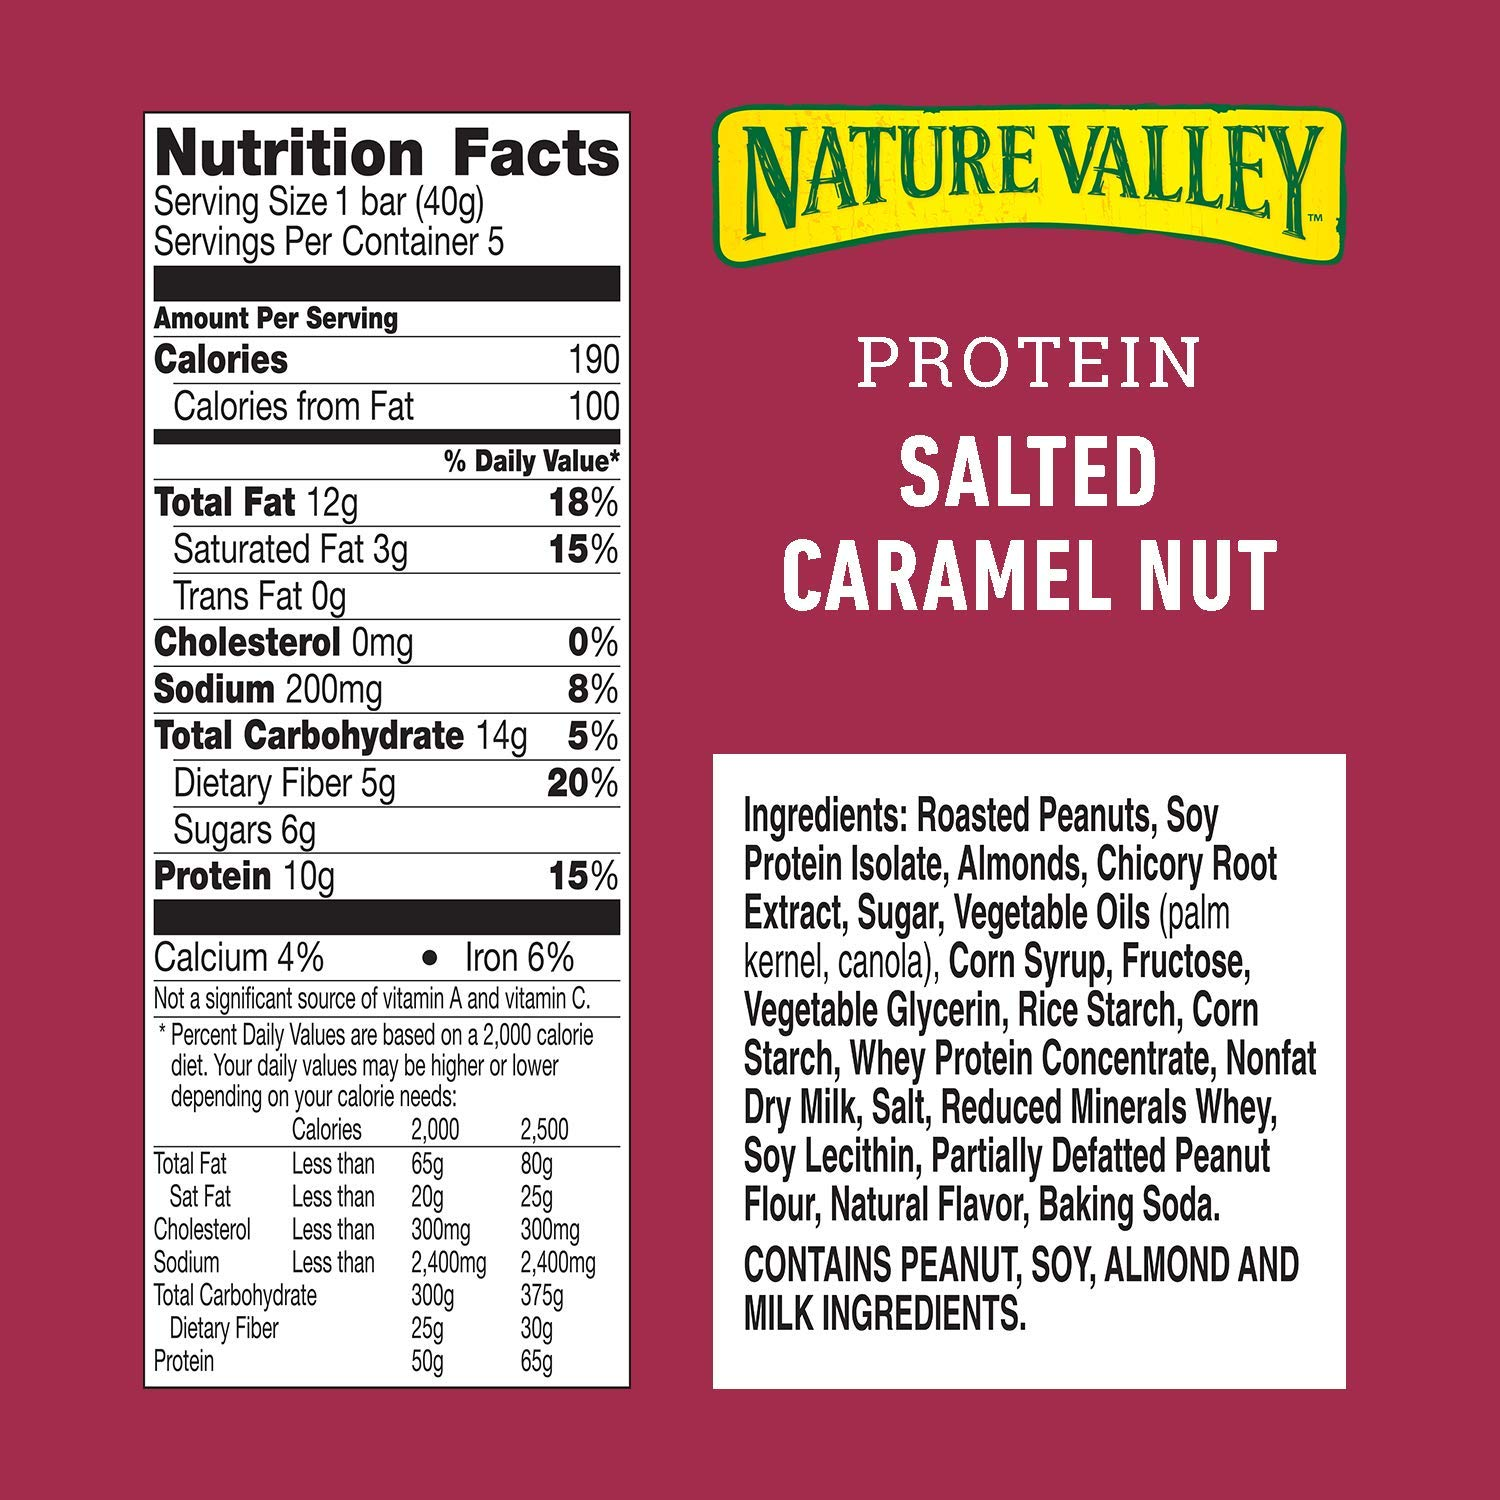 Nature Valley Protein Chewy Bars per serving